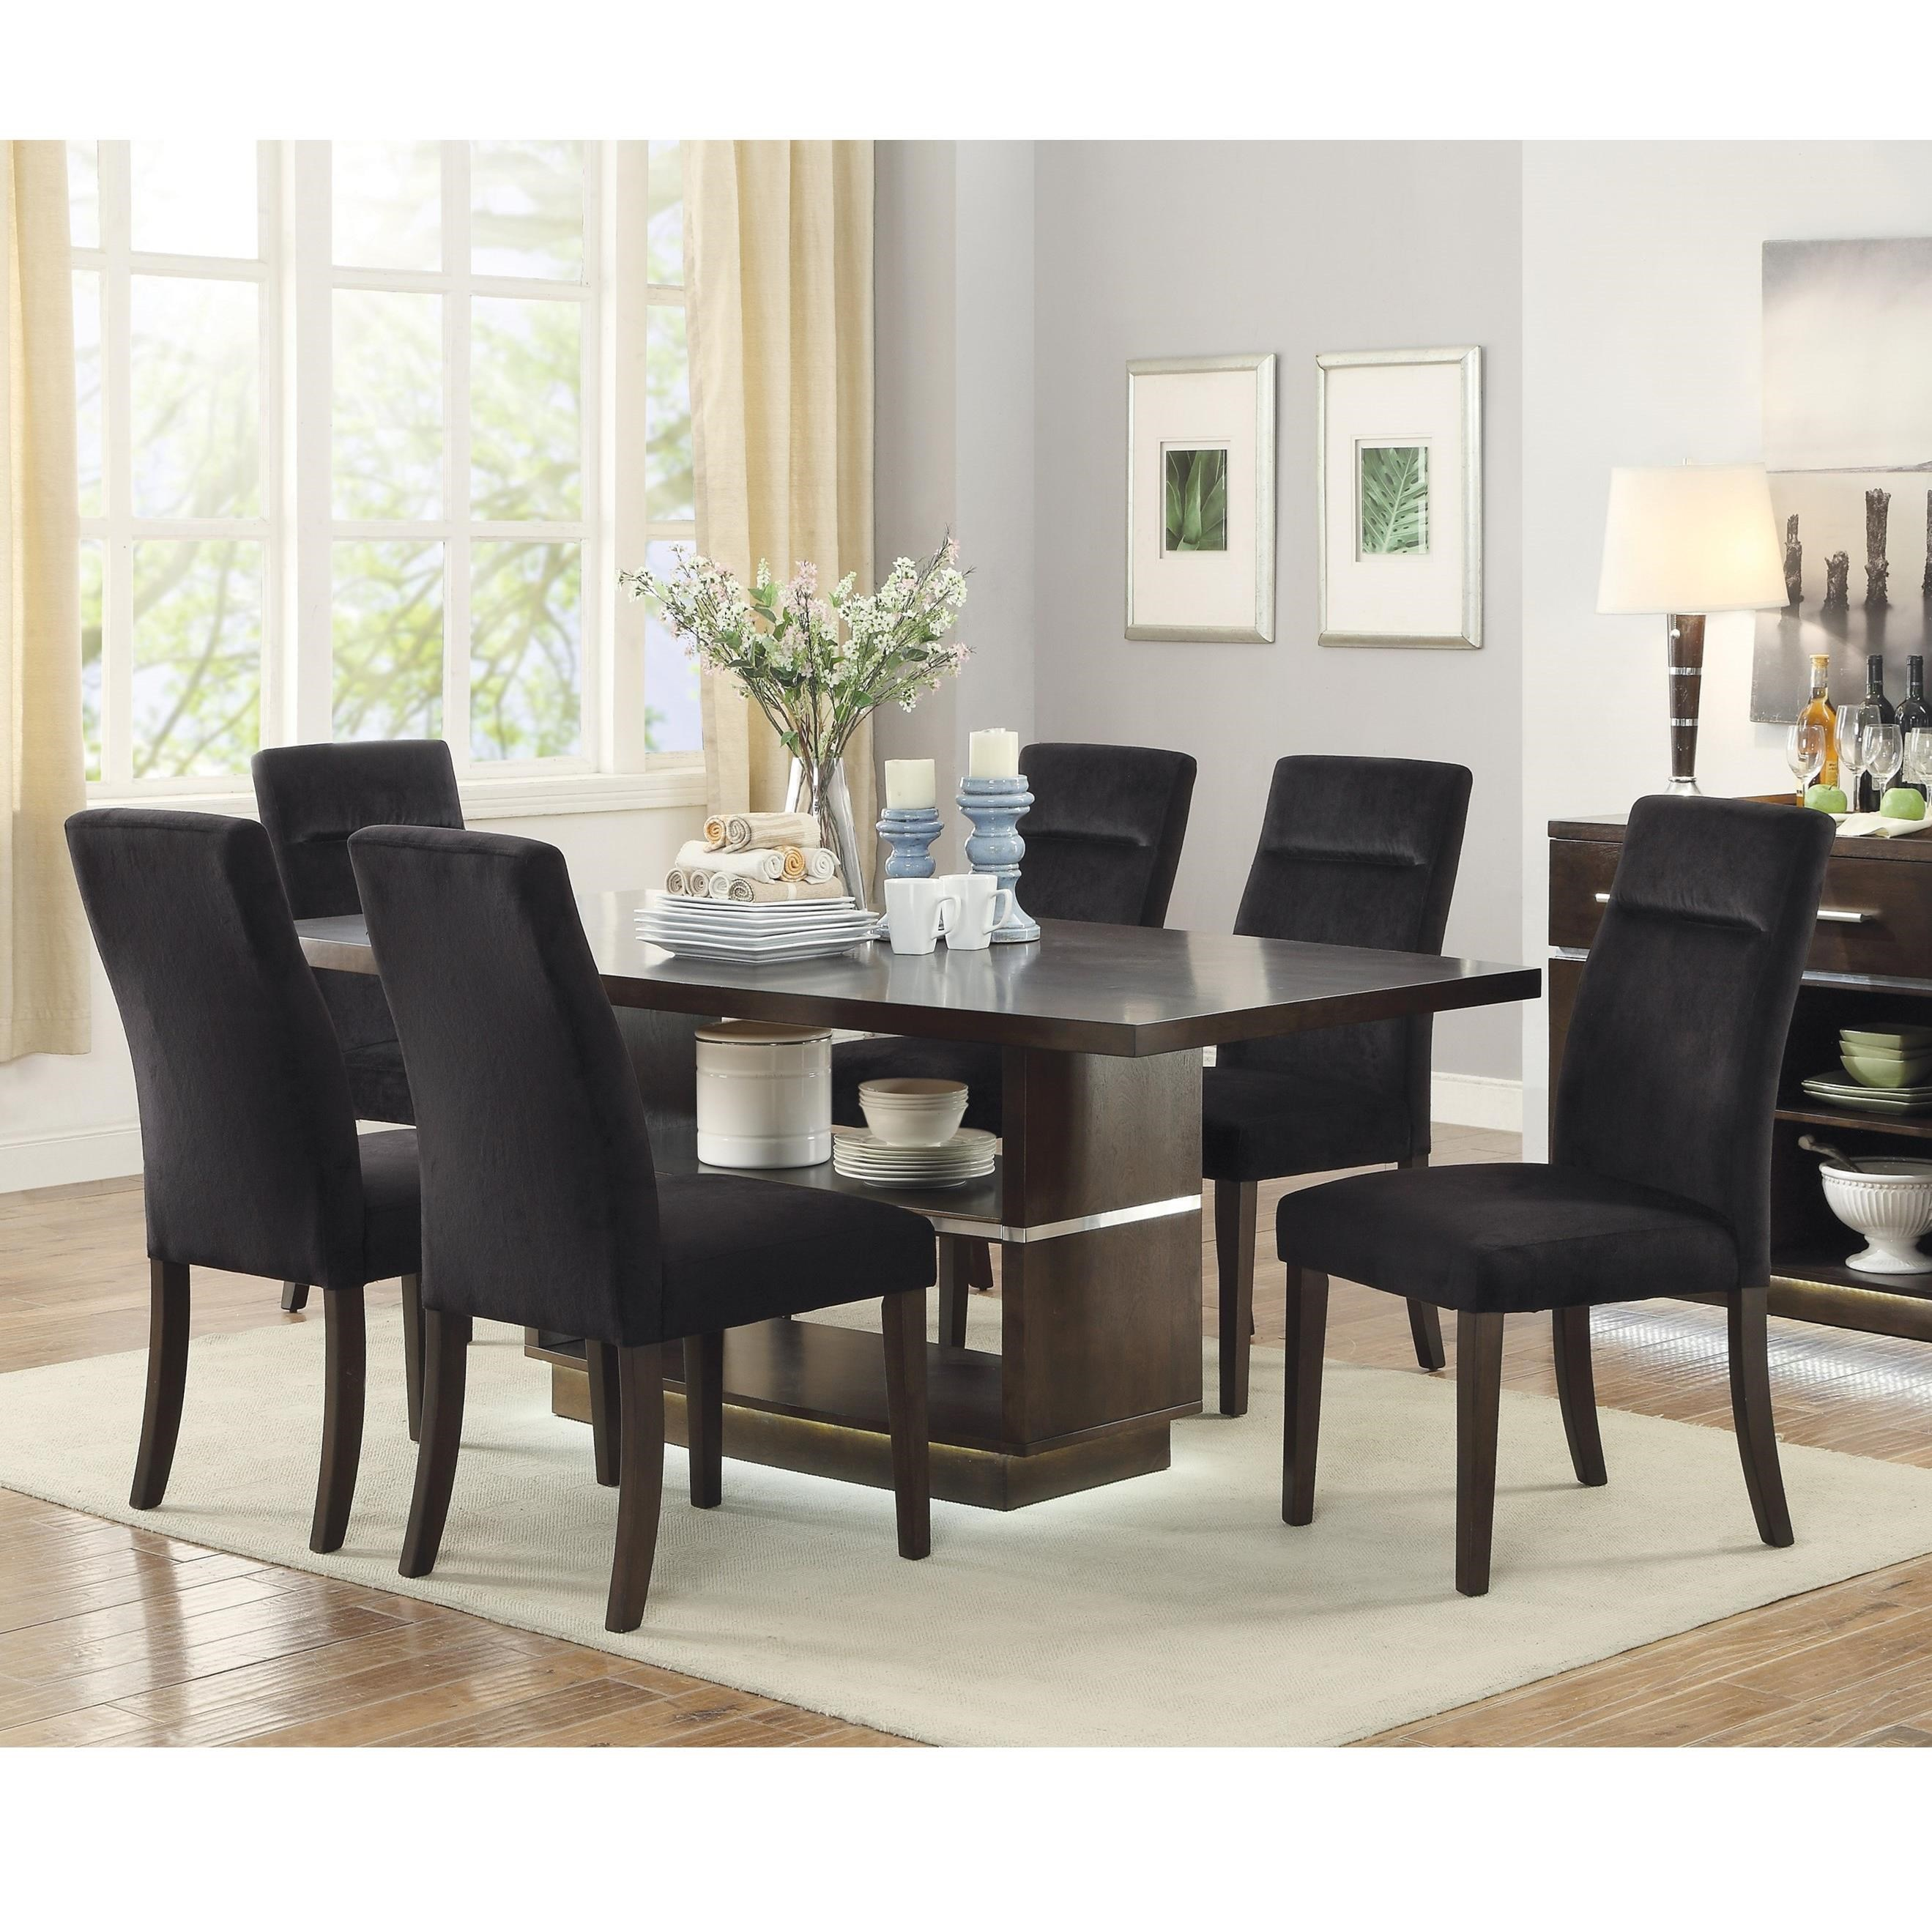 Coaster Lincoln Contemporary Table and Chair Set Value